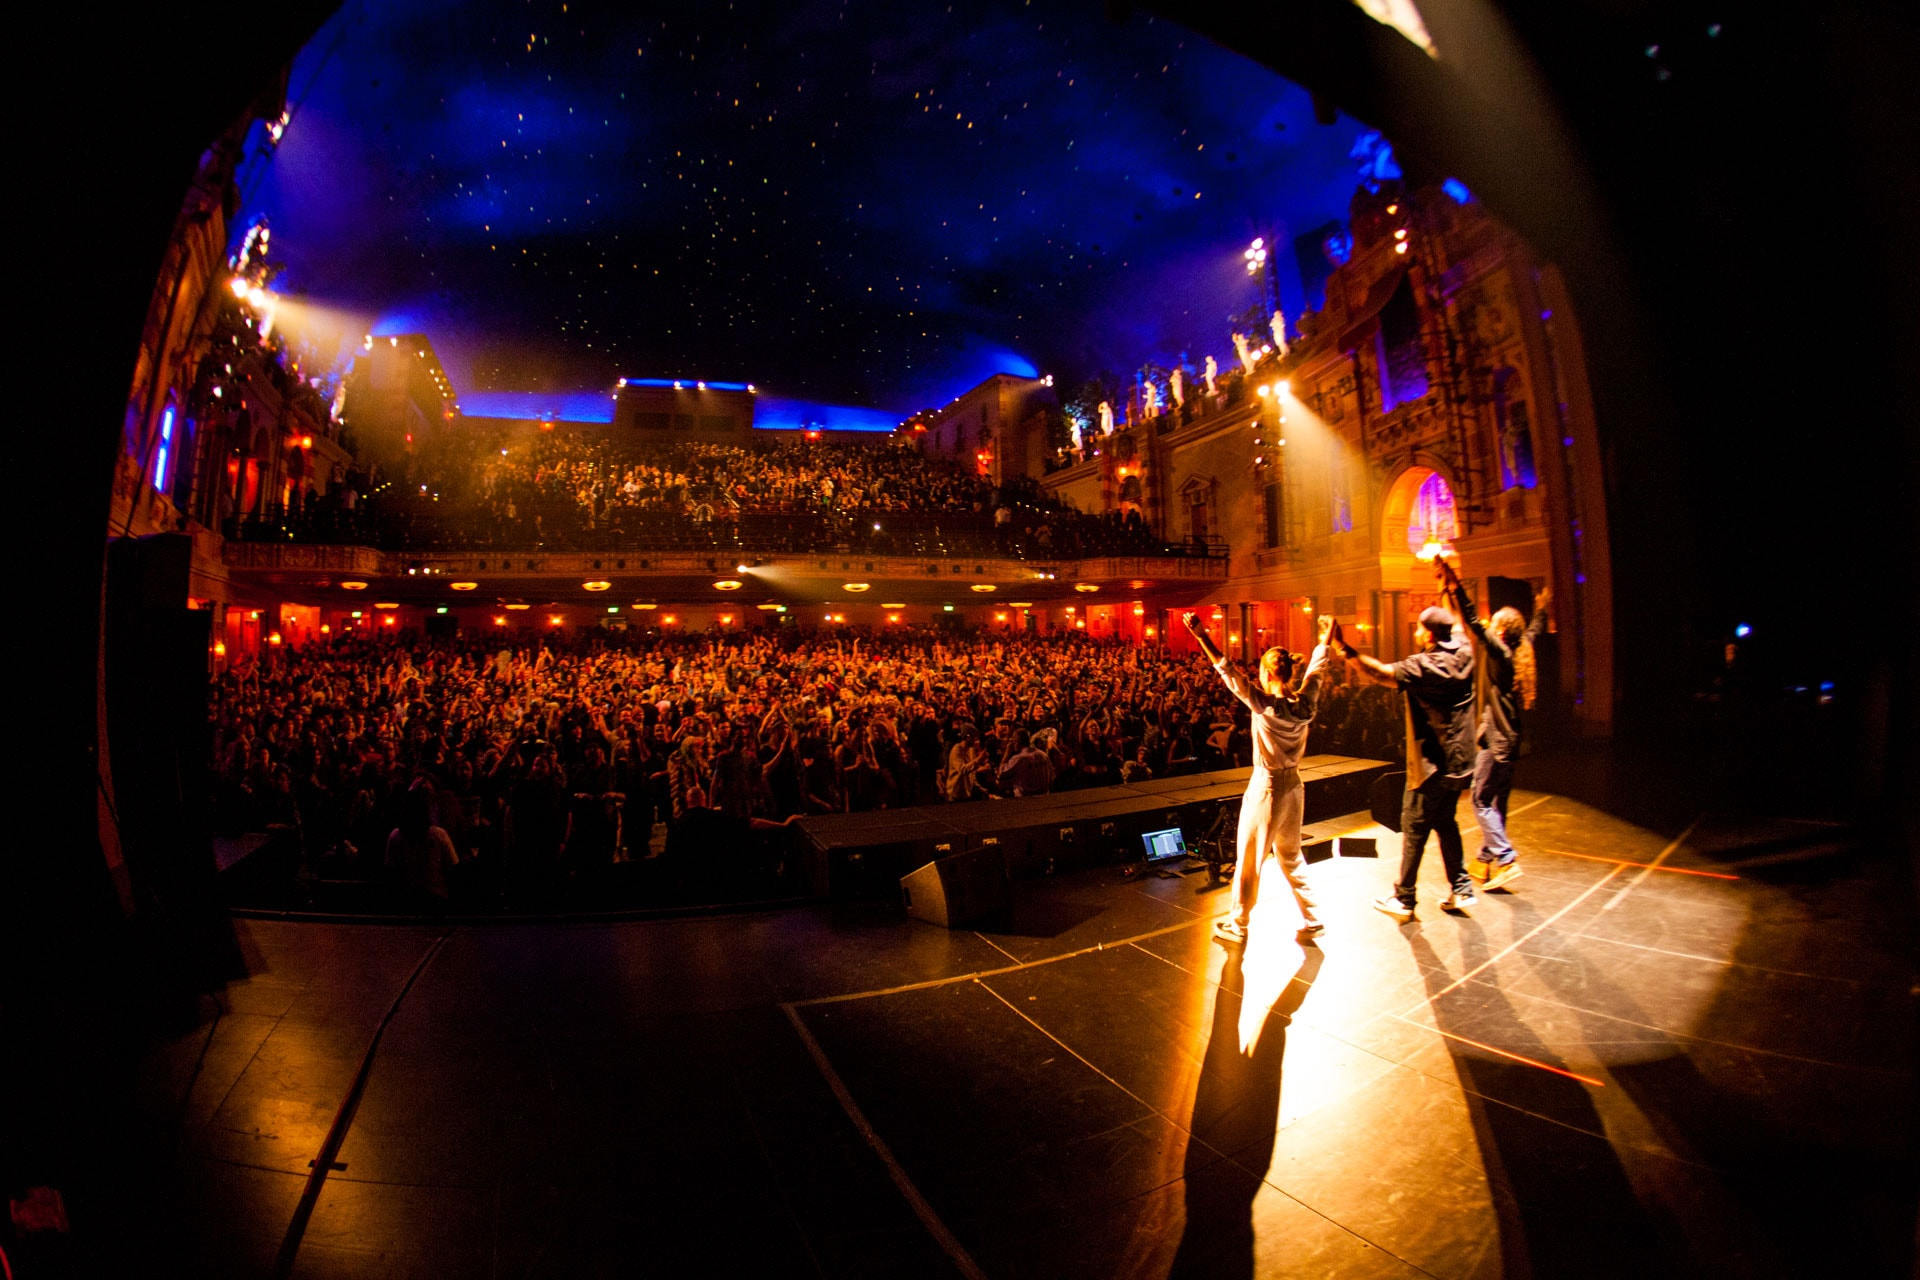 Live performers bow before Tipper crowd at Saenger Theater in New Orleans